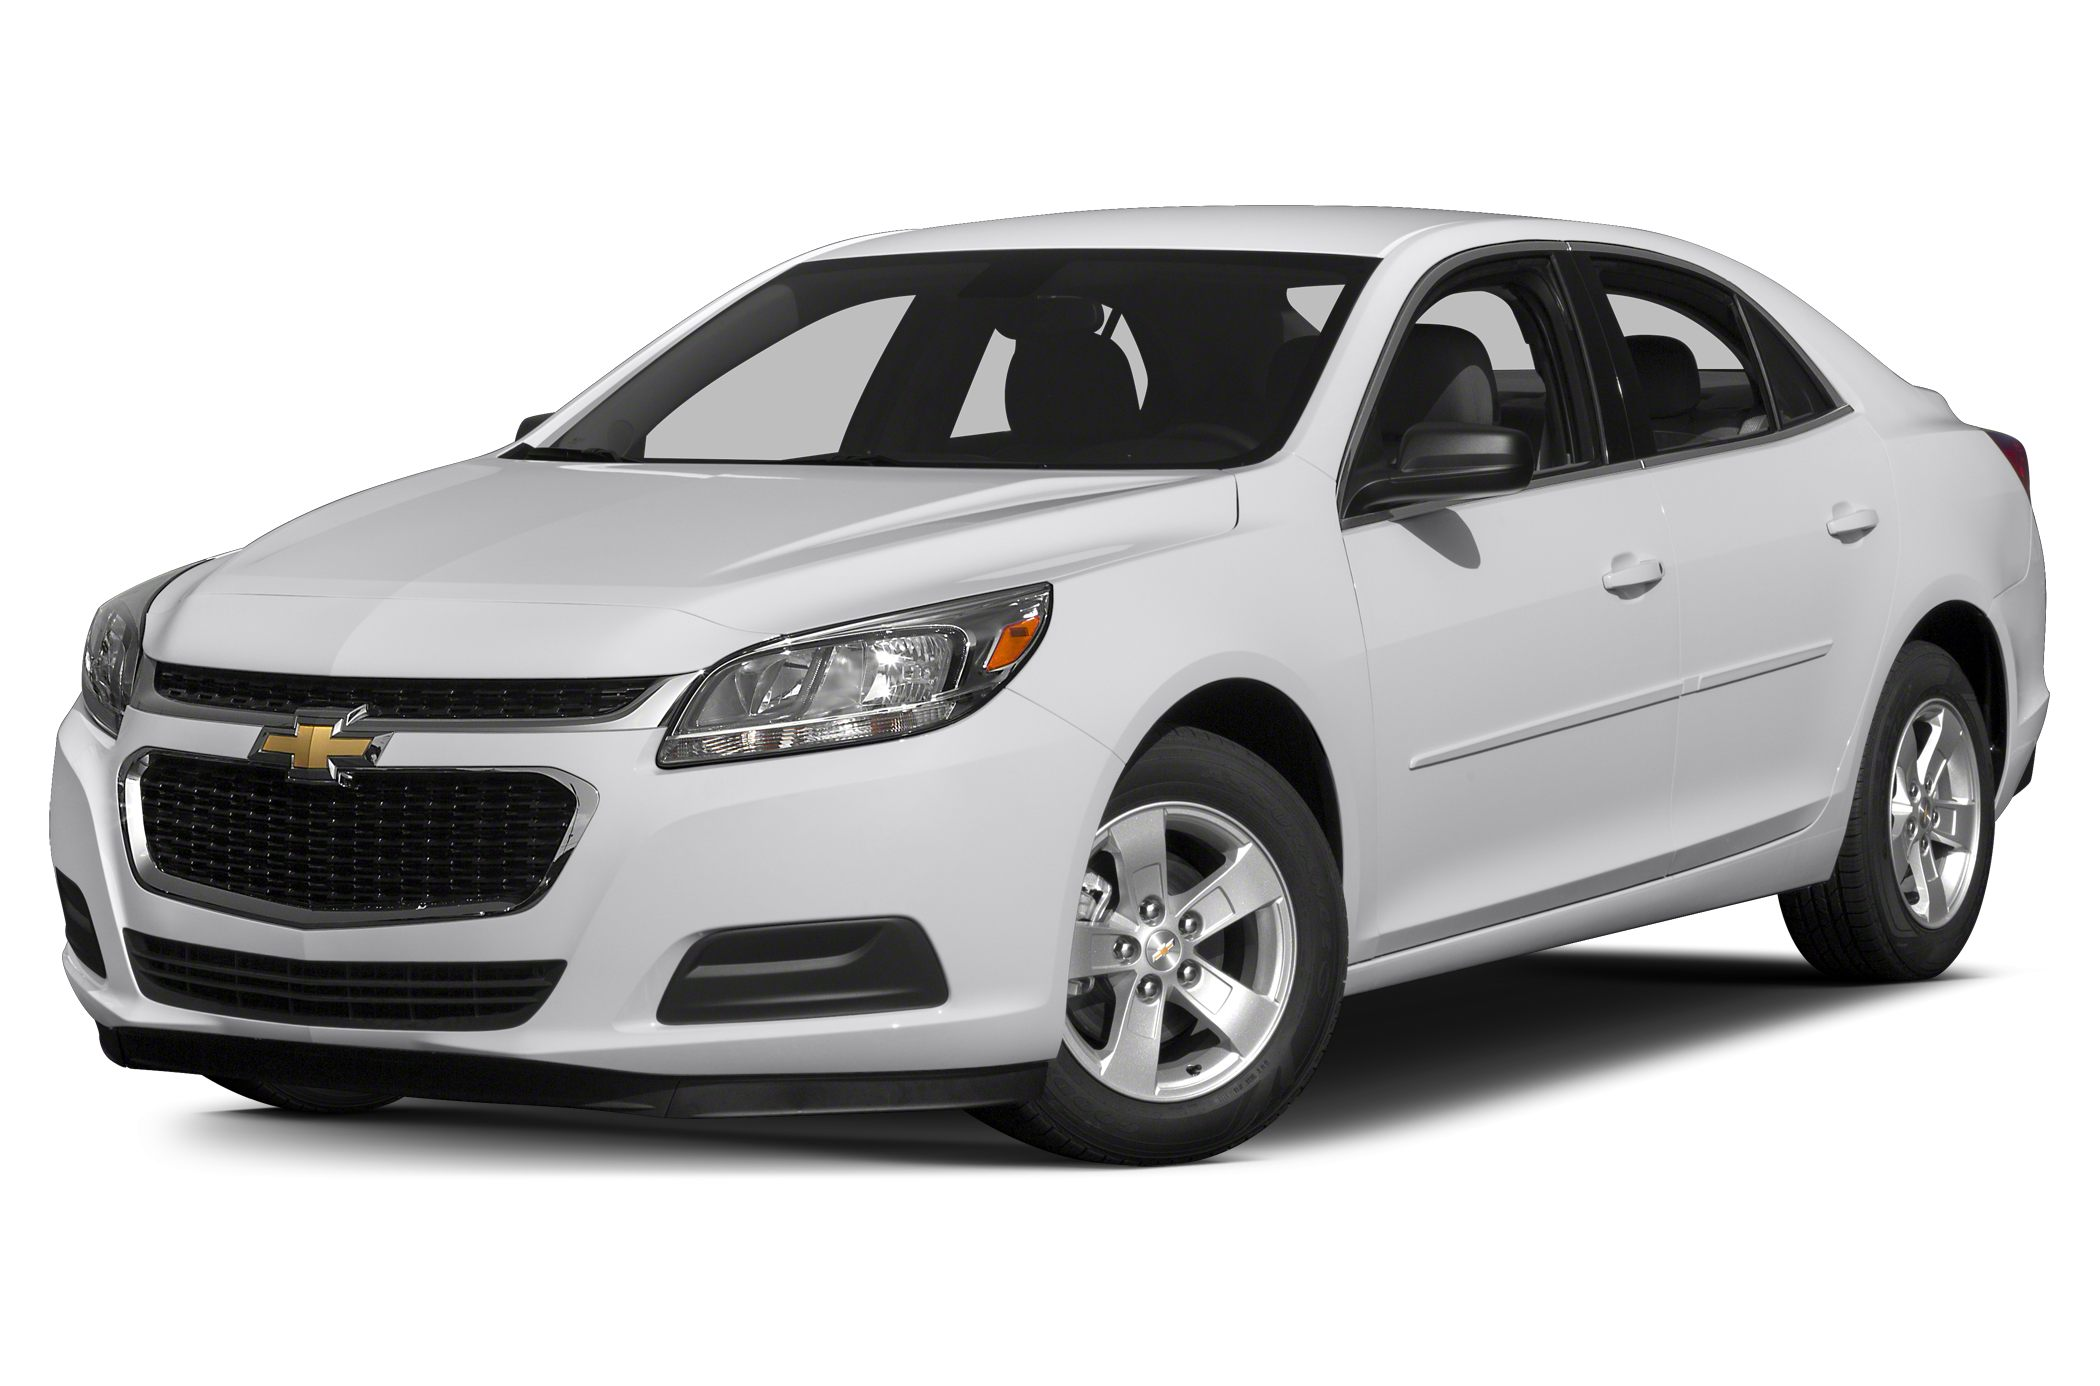 2015 Chevrolet Malibu LS Sedan for sale in Los Lunas for $23,385 with 0 miles